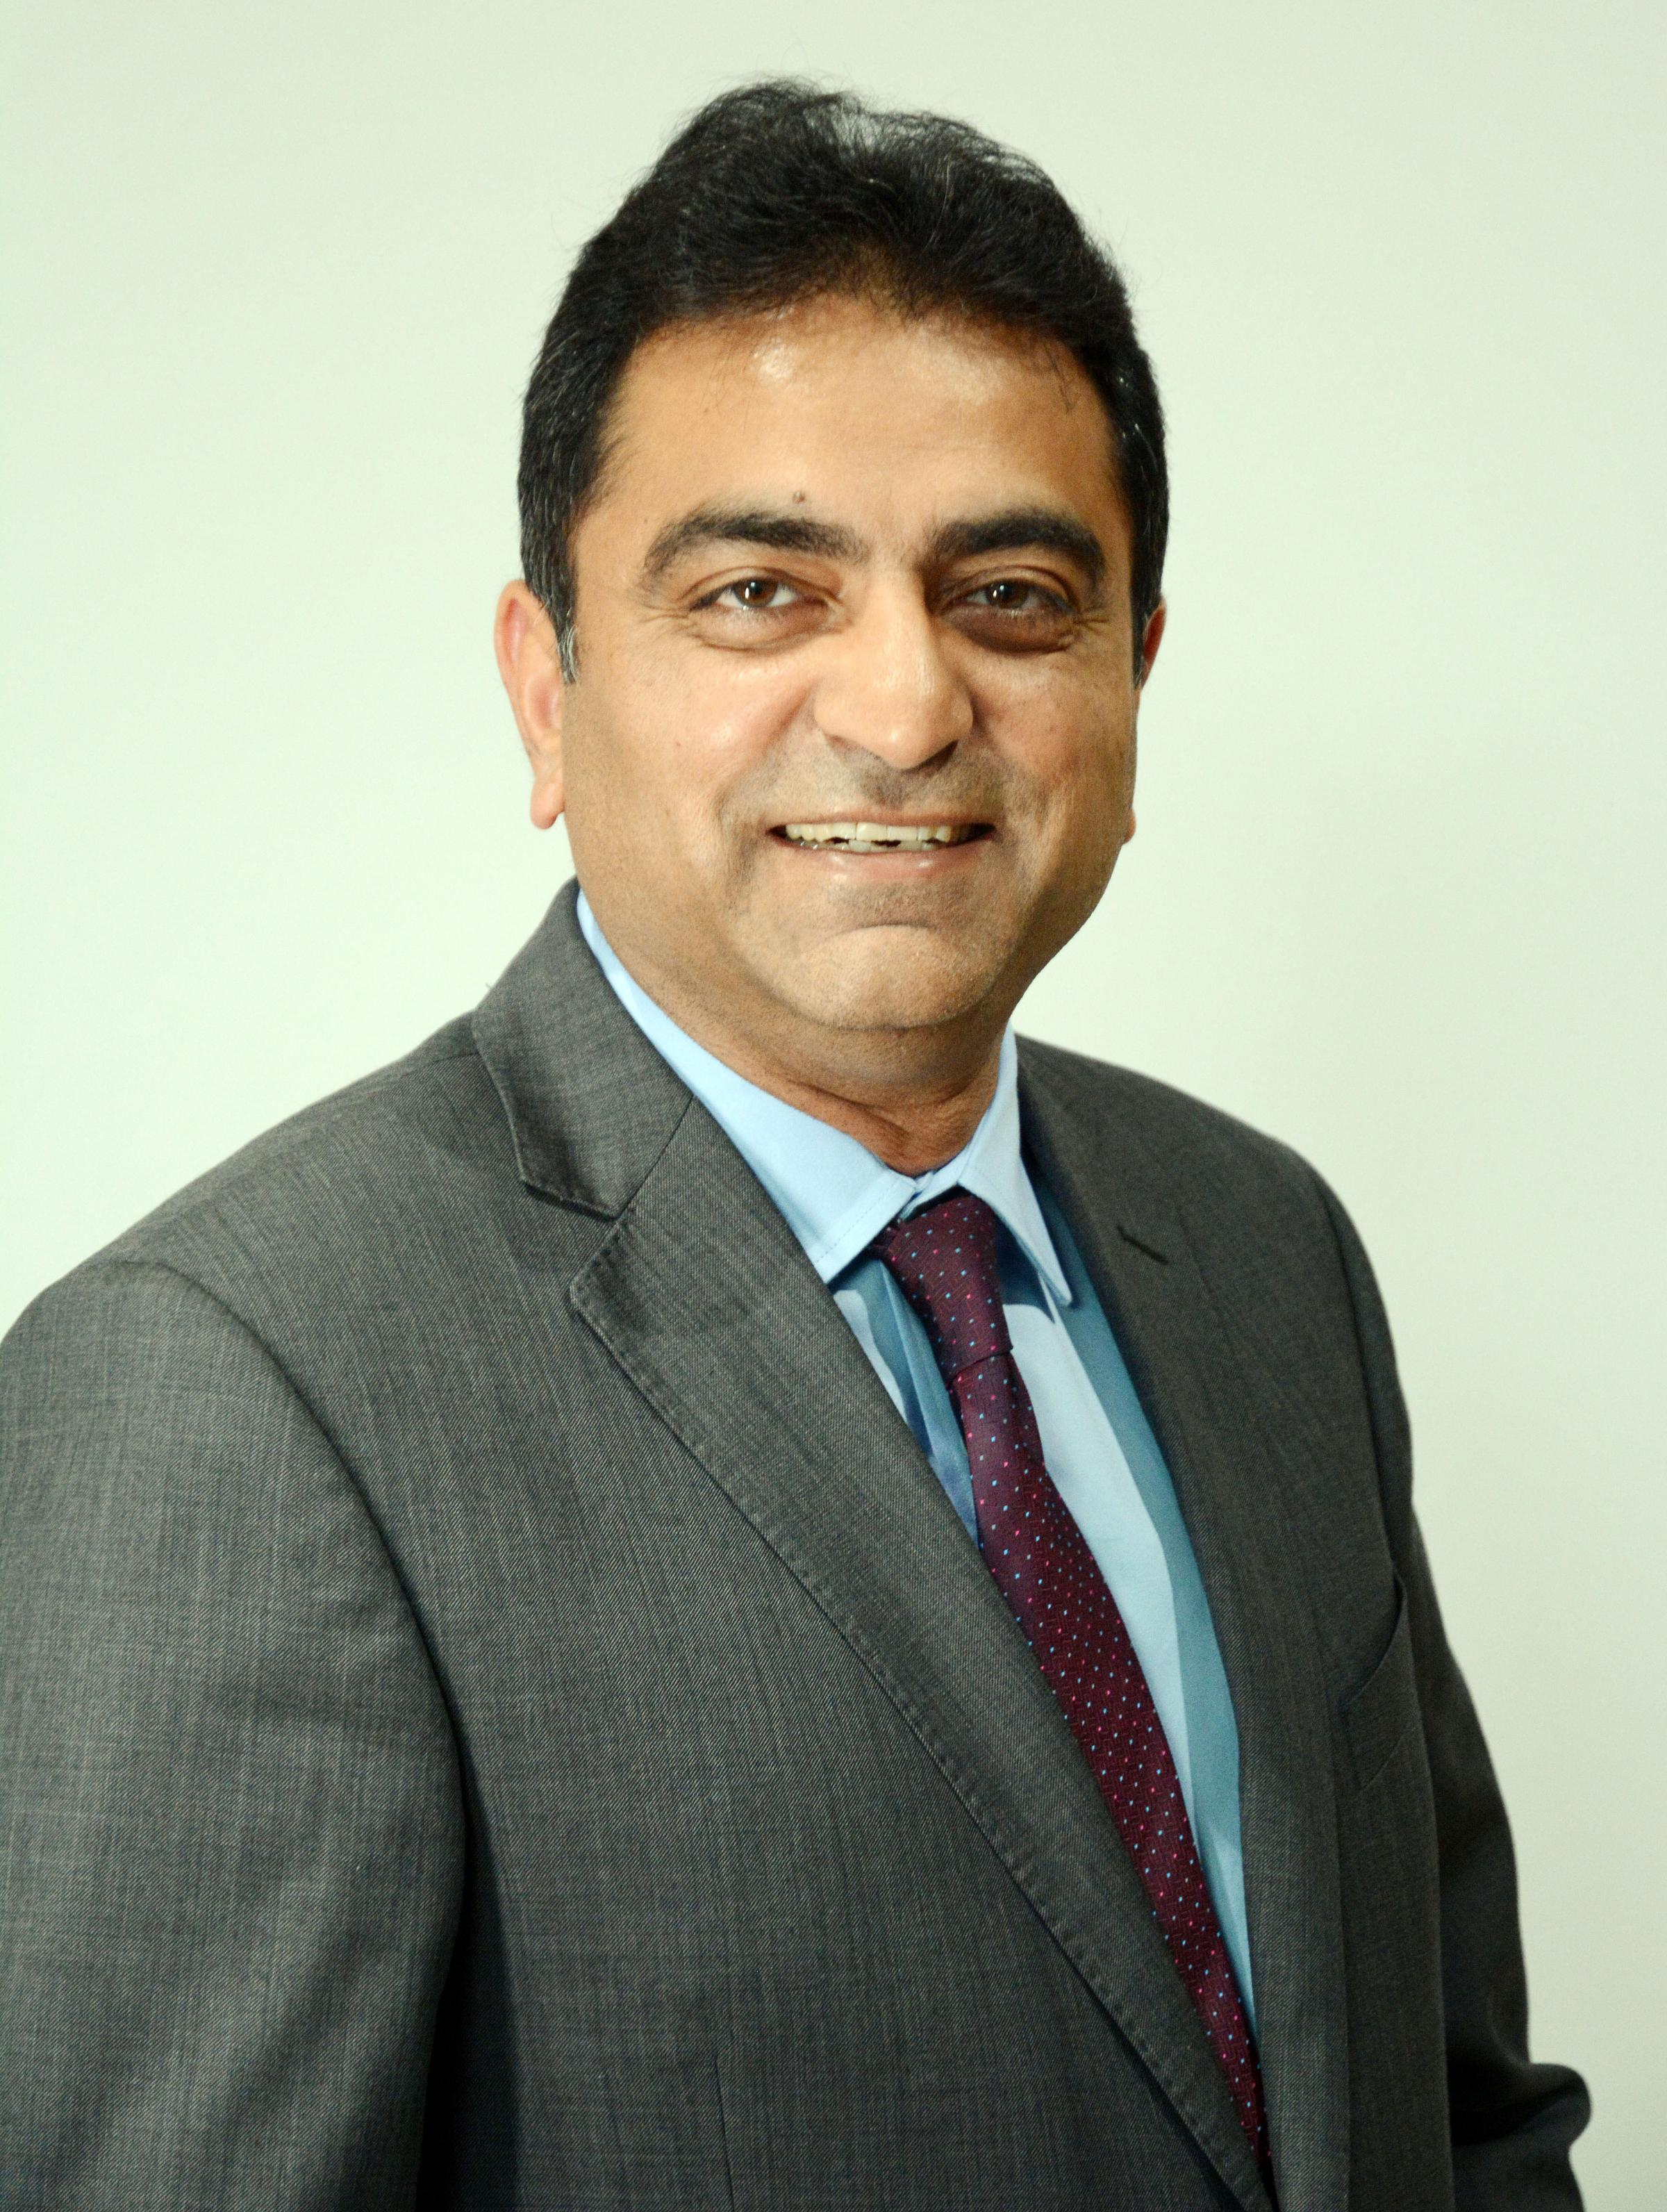 Cllr Sohail Munawar has been removed as head of the Slough Labour Group